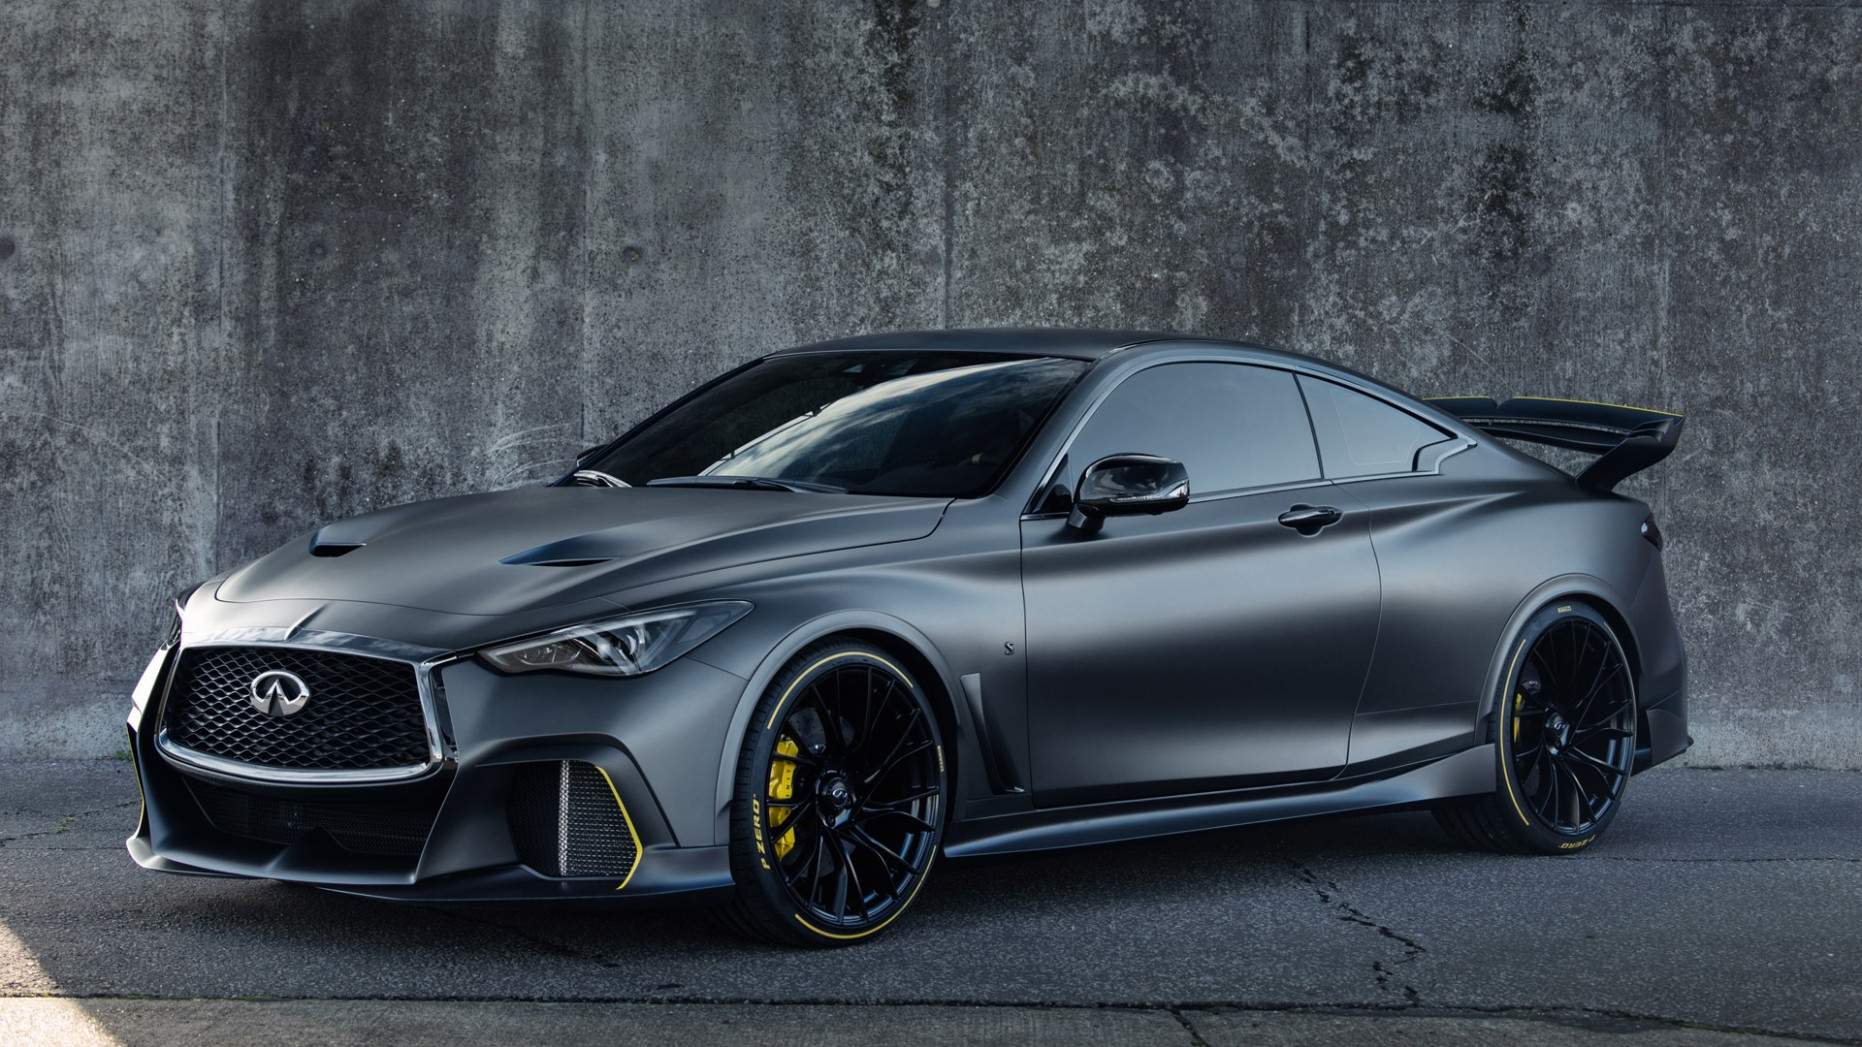 Redesign and Concept 2022 Infiniti Q60 Coupe